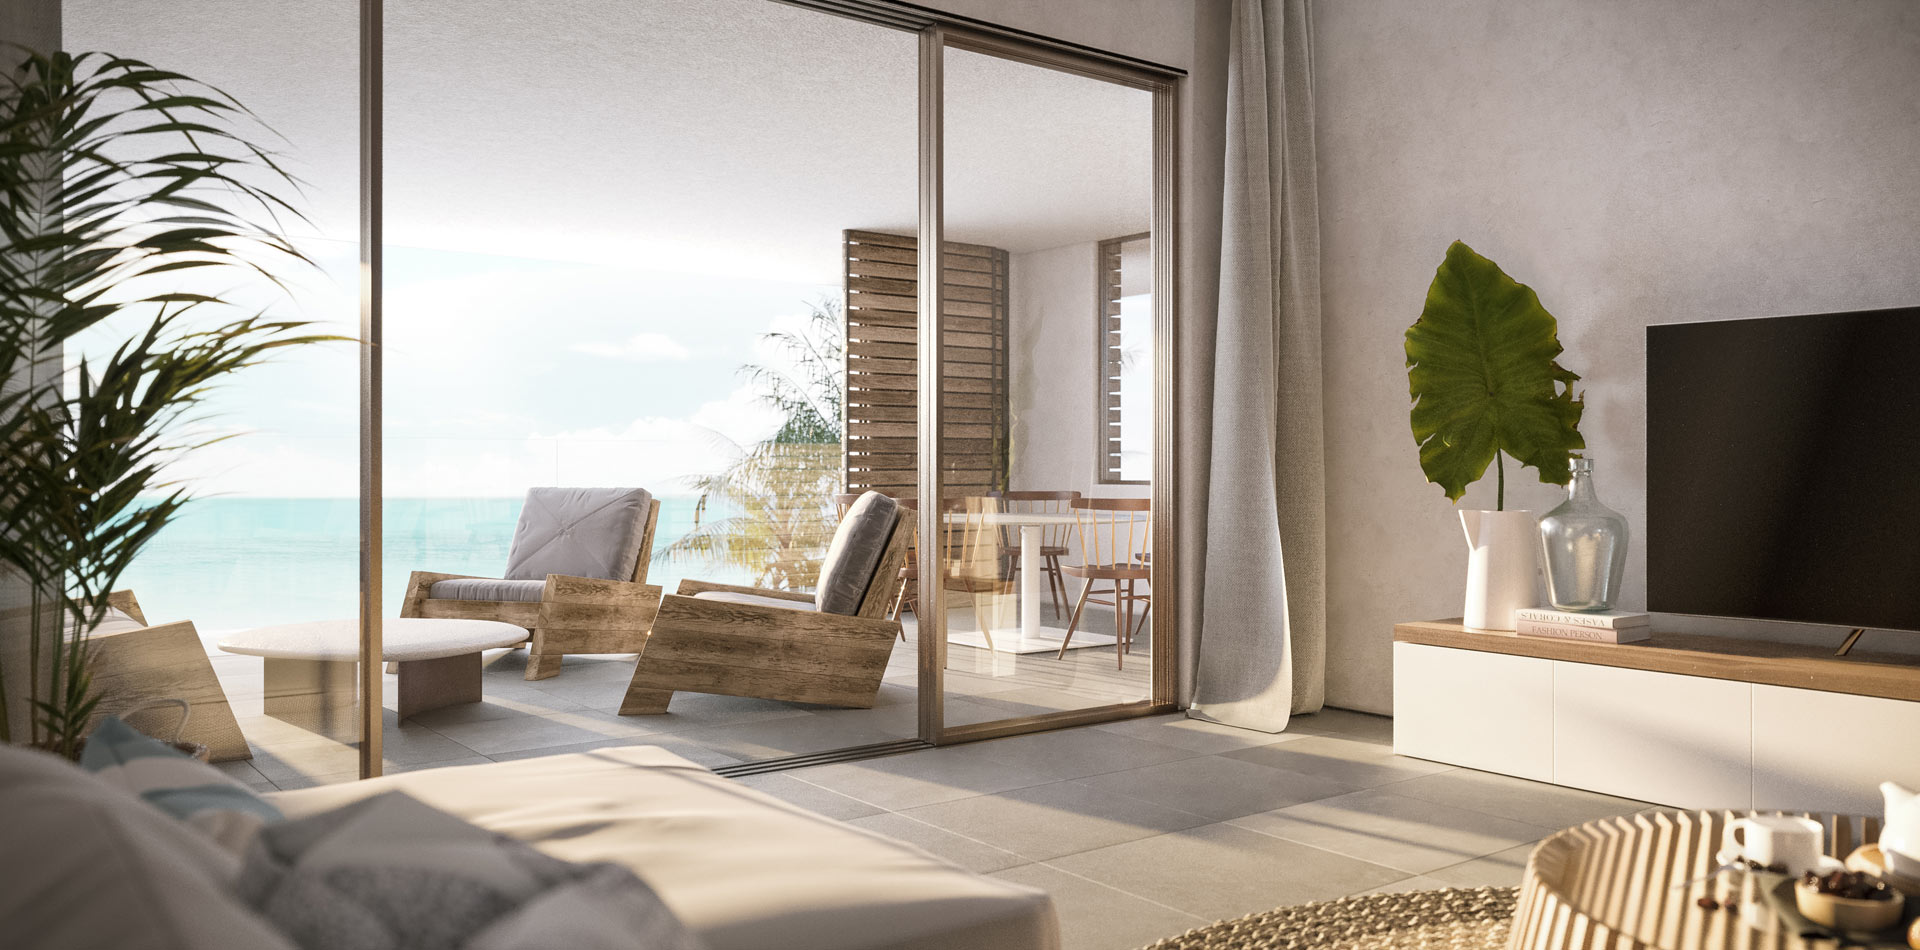 3D render archviz architectural visualisation south africa